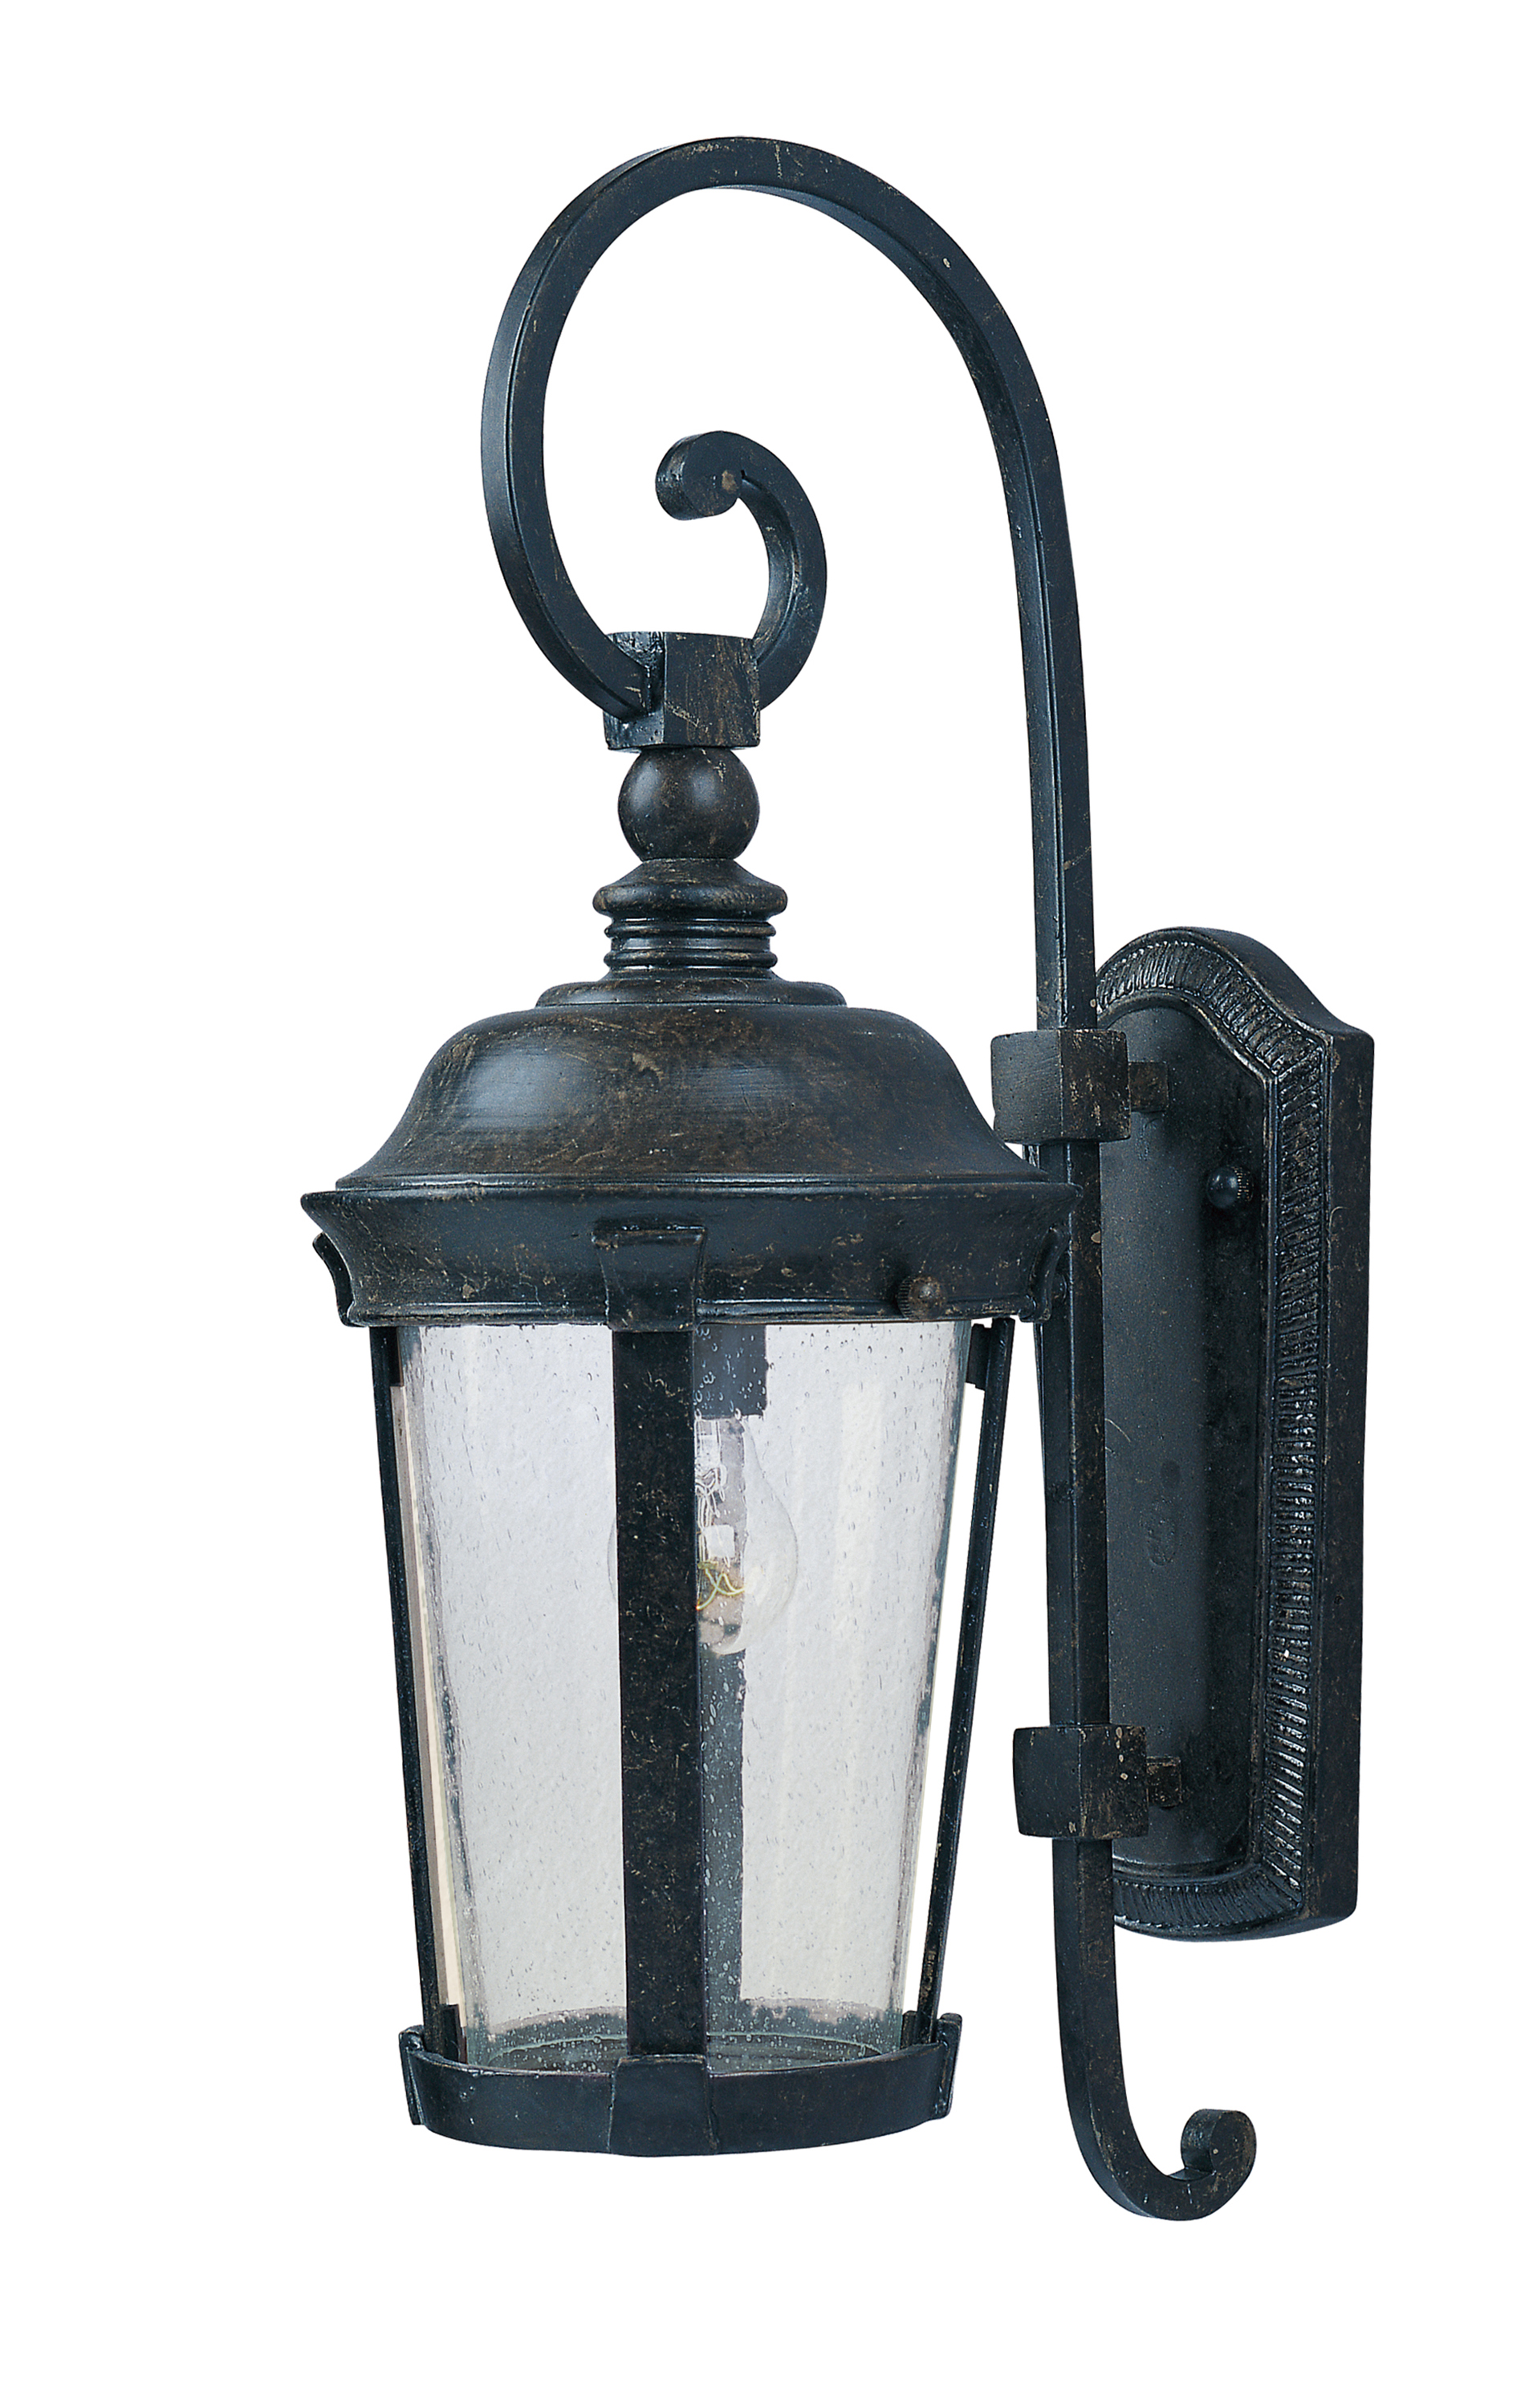 Dover cast 1 light outdoor wall lantern outdoor wall mount maxim dover dc aloadofball